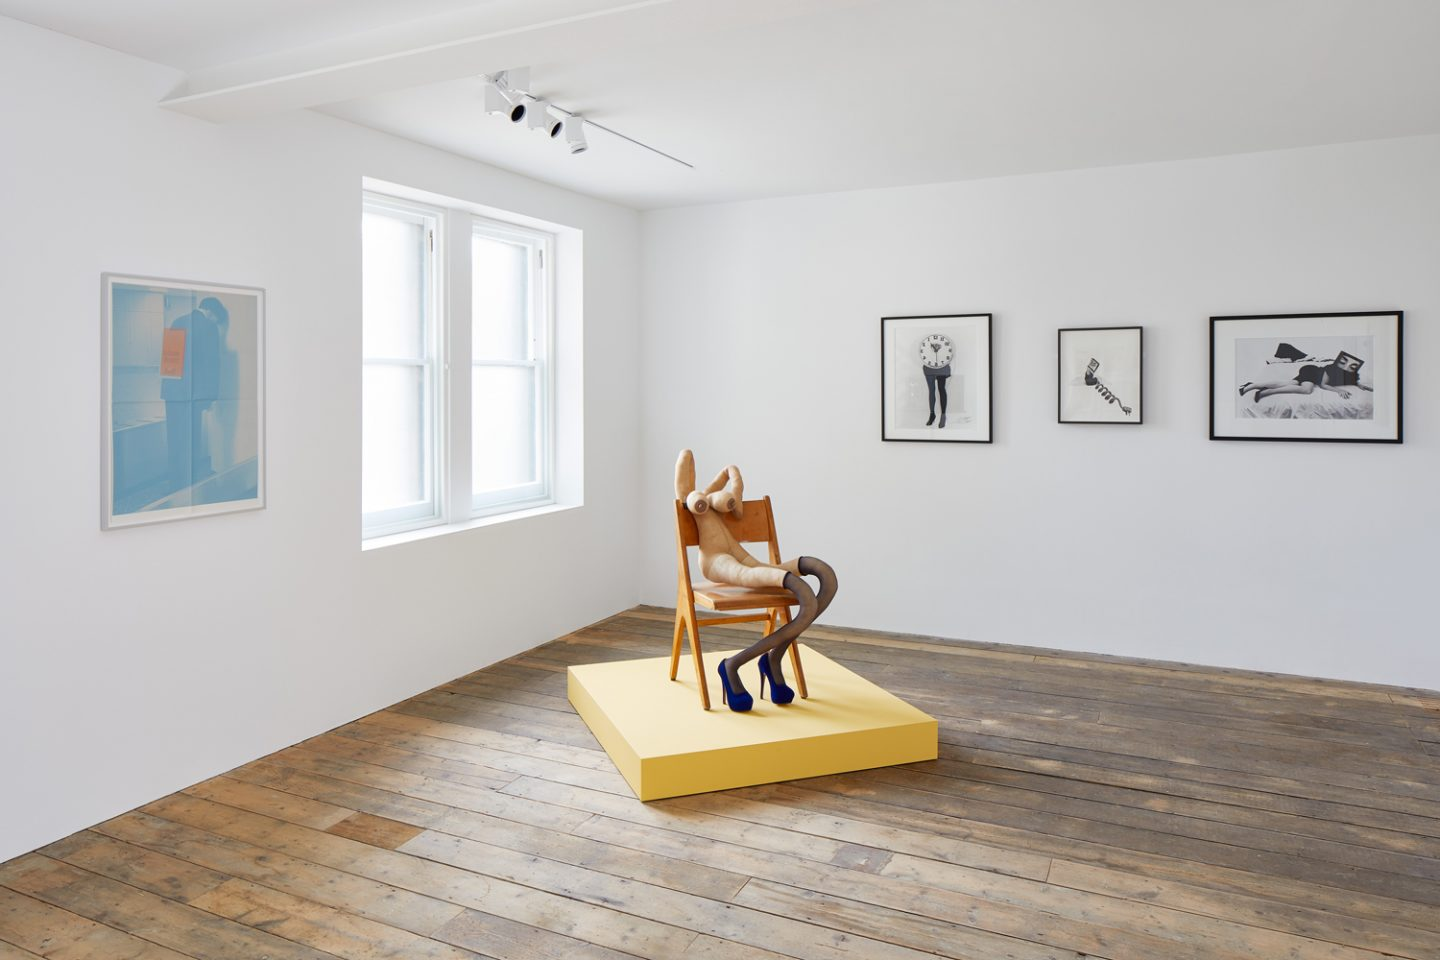 Installation view of KNOCK KNOCK at South London Gallery (22 September – 18 November 2018) Pictured: Campaign Volunteer (2018) by Rosemarie Trockel,  Yves (2018) by Sarah Lucas and Biological Clock 2(1995), Call Me (1987) and Seduction (1985) by Lynn Hershman Leeson Photo: Andy Stagg